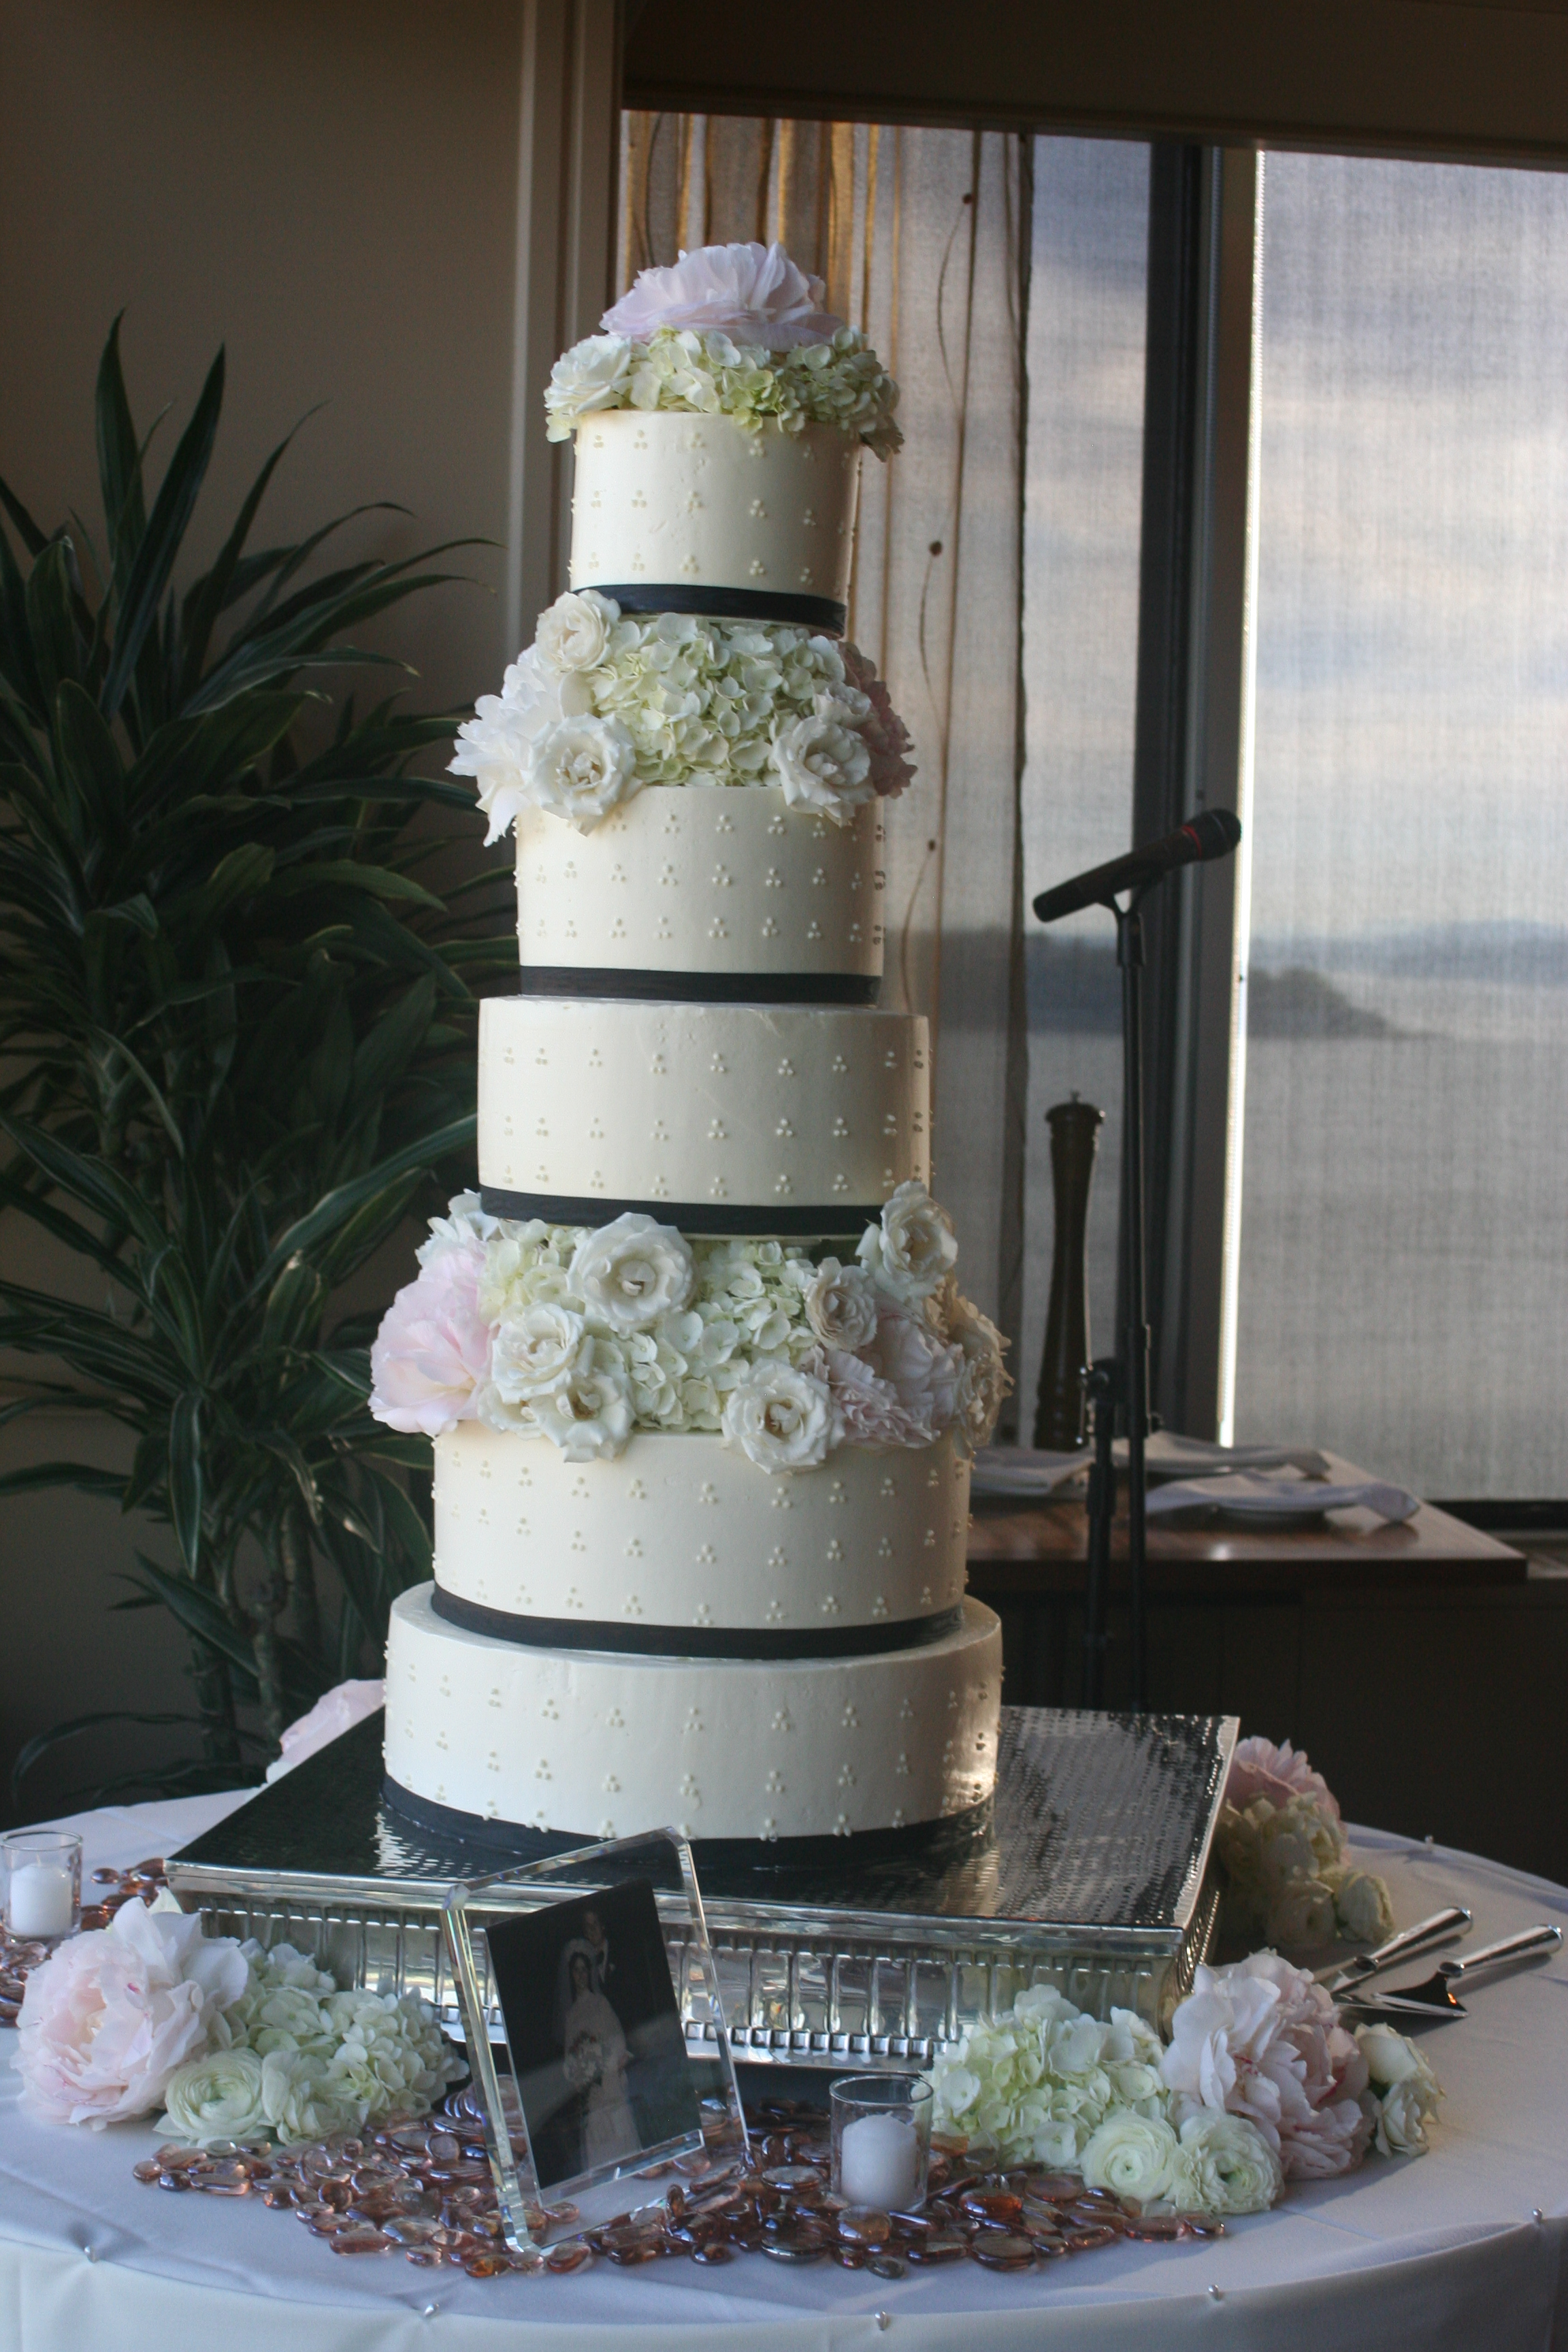 Cake by Gayle Orth Catering